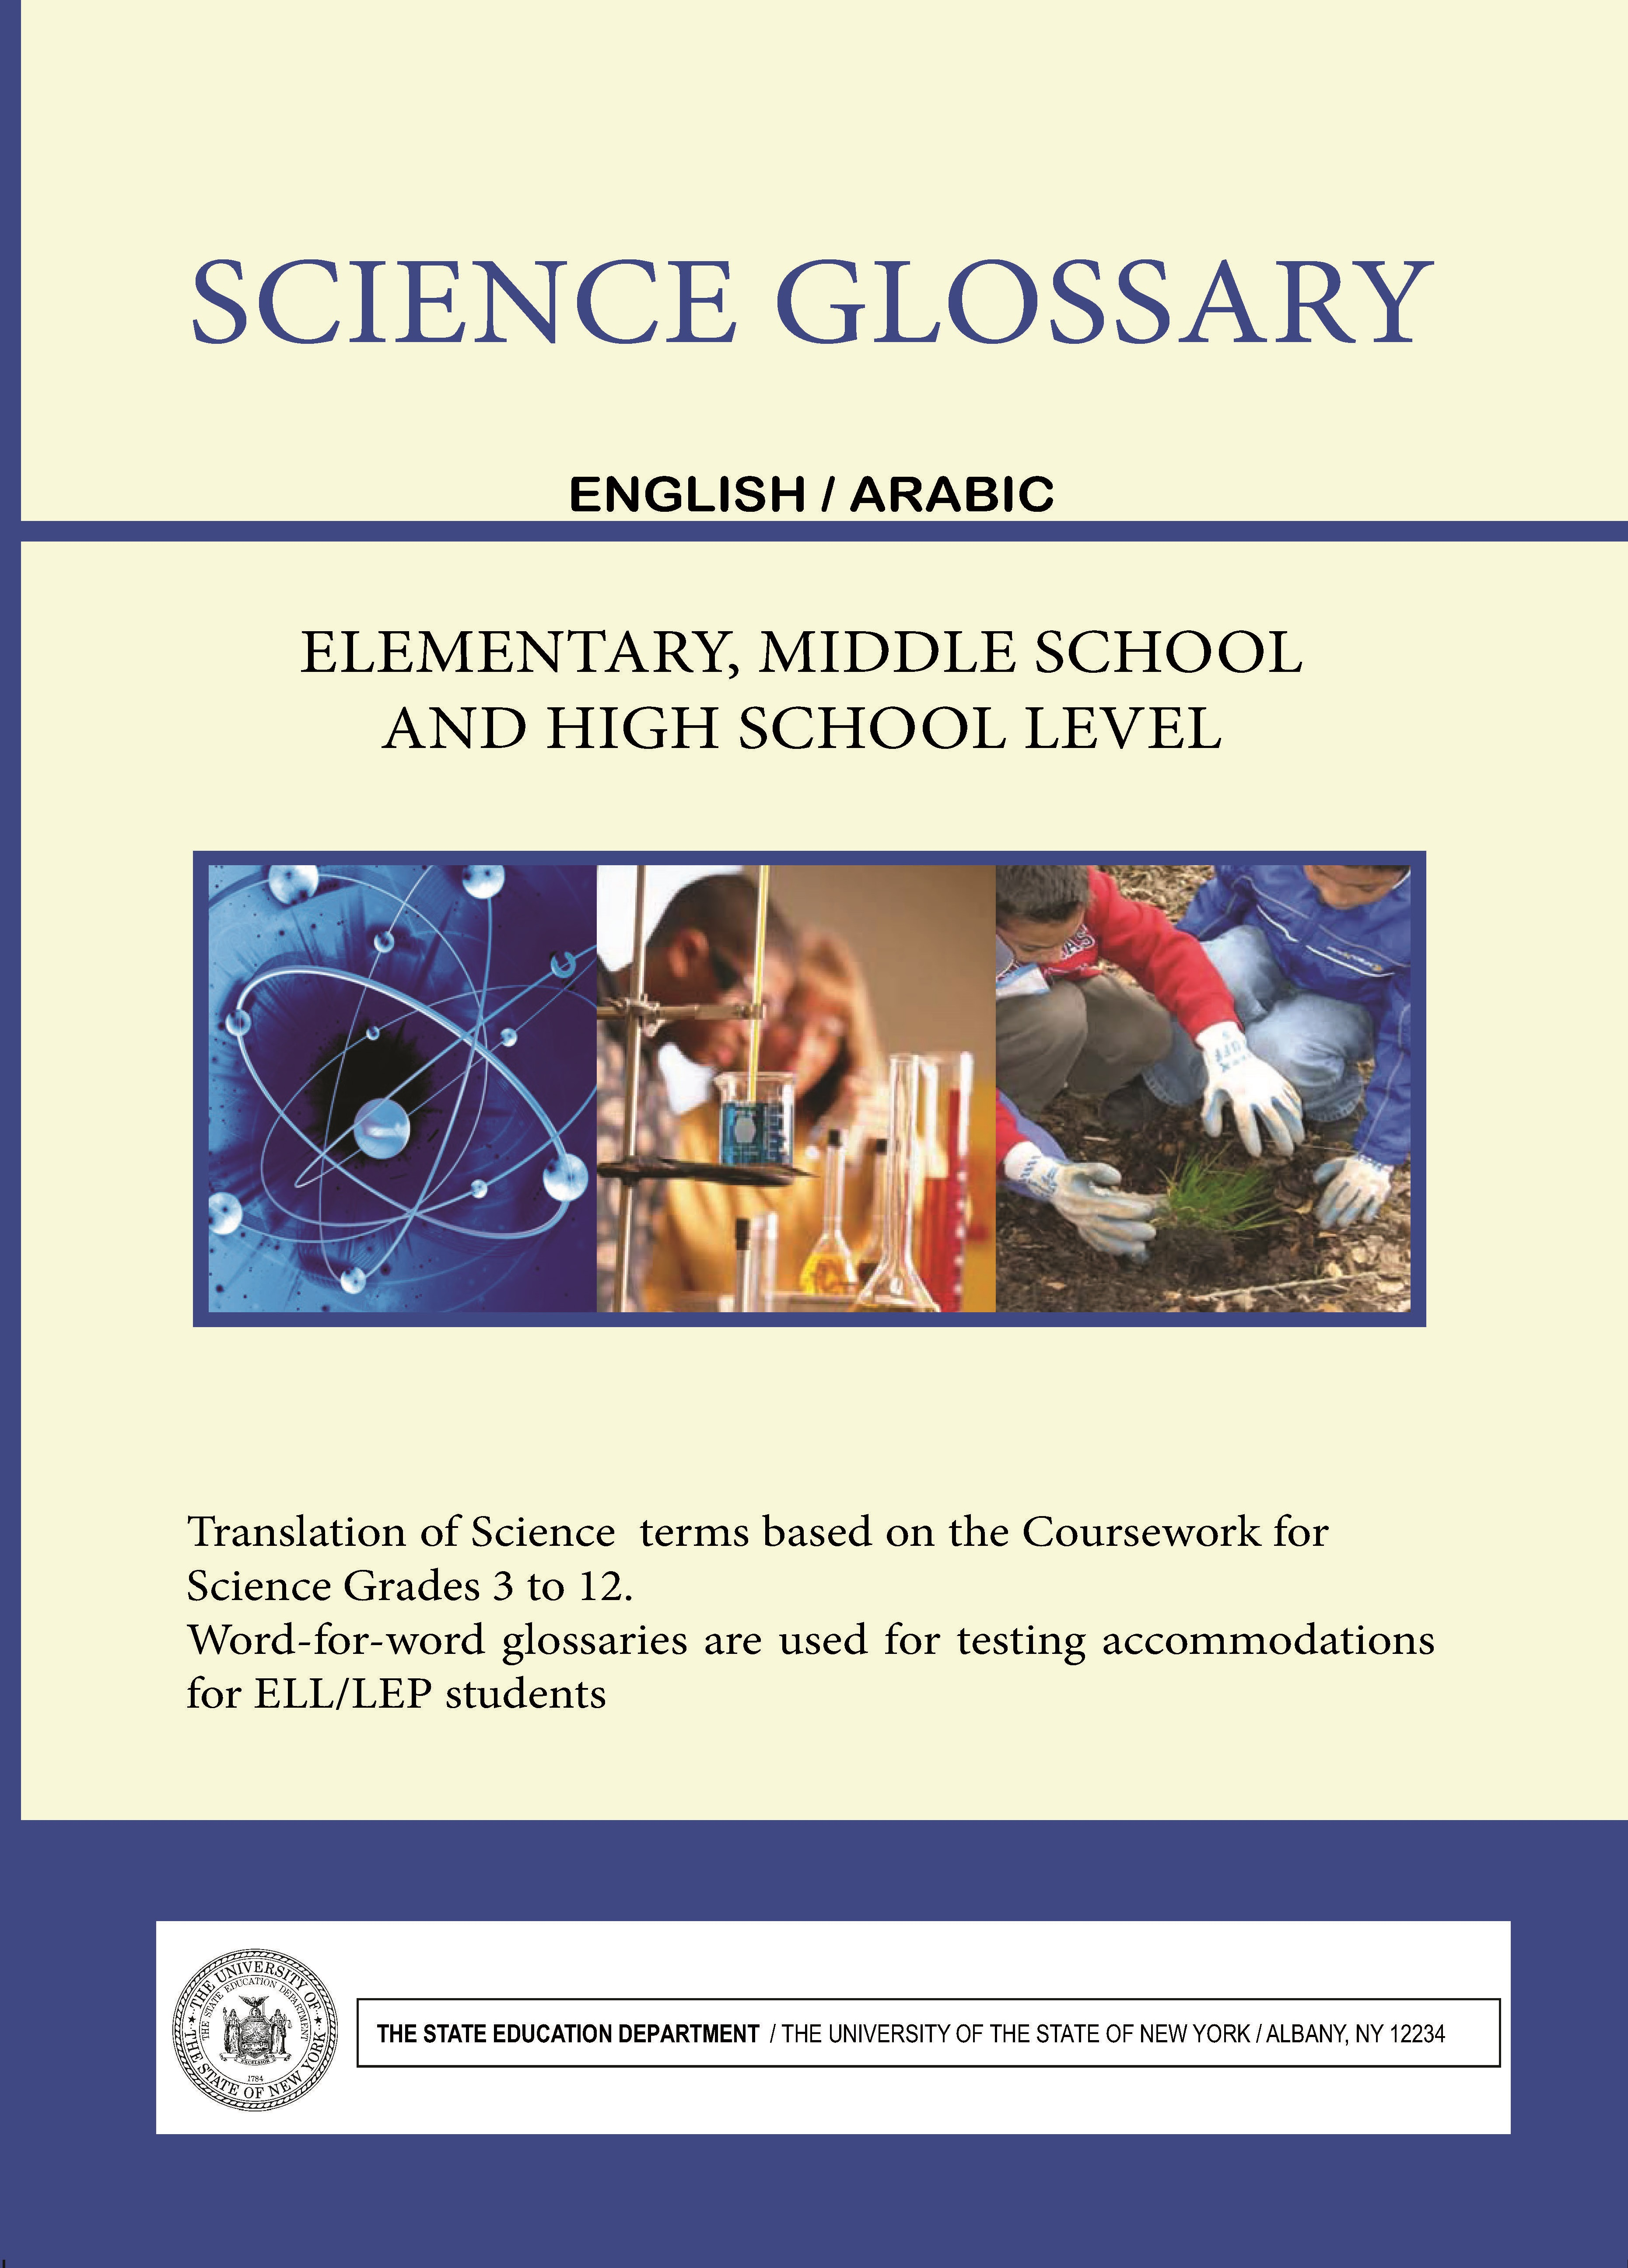 Science Glossary  English/Arabic  Elementary, Middle School and High School Level